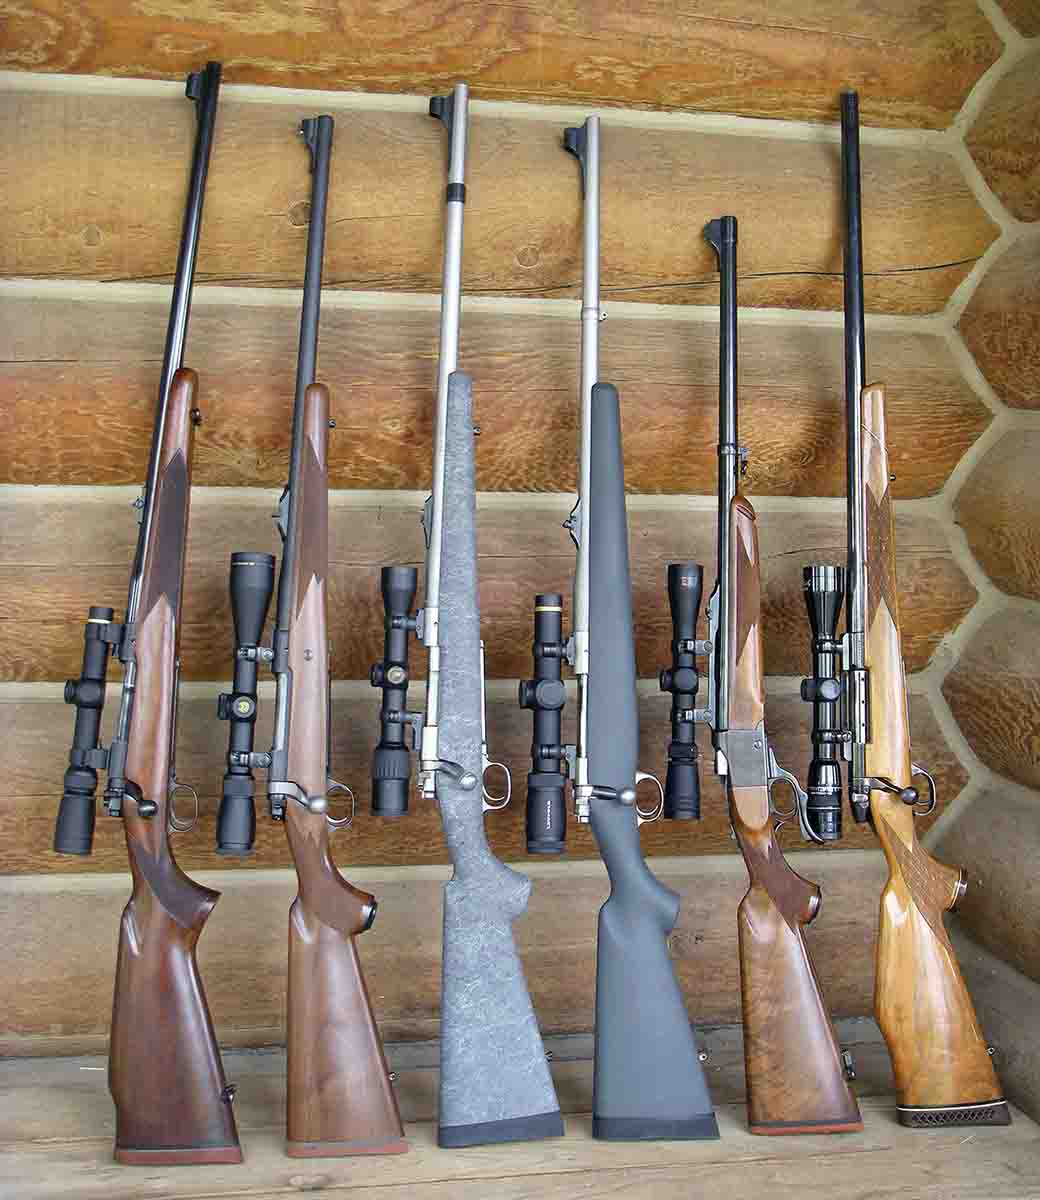 Popular .375 hunting rifles (left to right): Winchester pre-64 Model 70 .375 H&H Magnum, Ruger Hawkeye .375 Ruger, custom Winchester Model 70 Classic .375 H&H, Kimber Model 8400 Talkeetna .375 H&H, Ruger No. 1 .375 H&H and Weatherby Mark V .378 Weatherby Magnum.